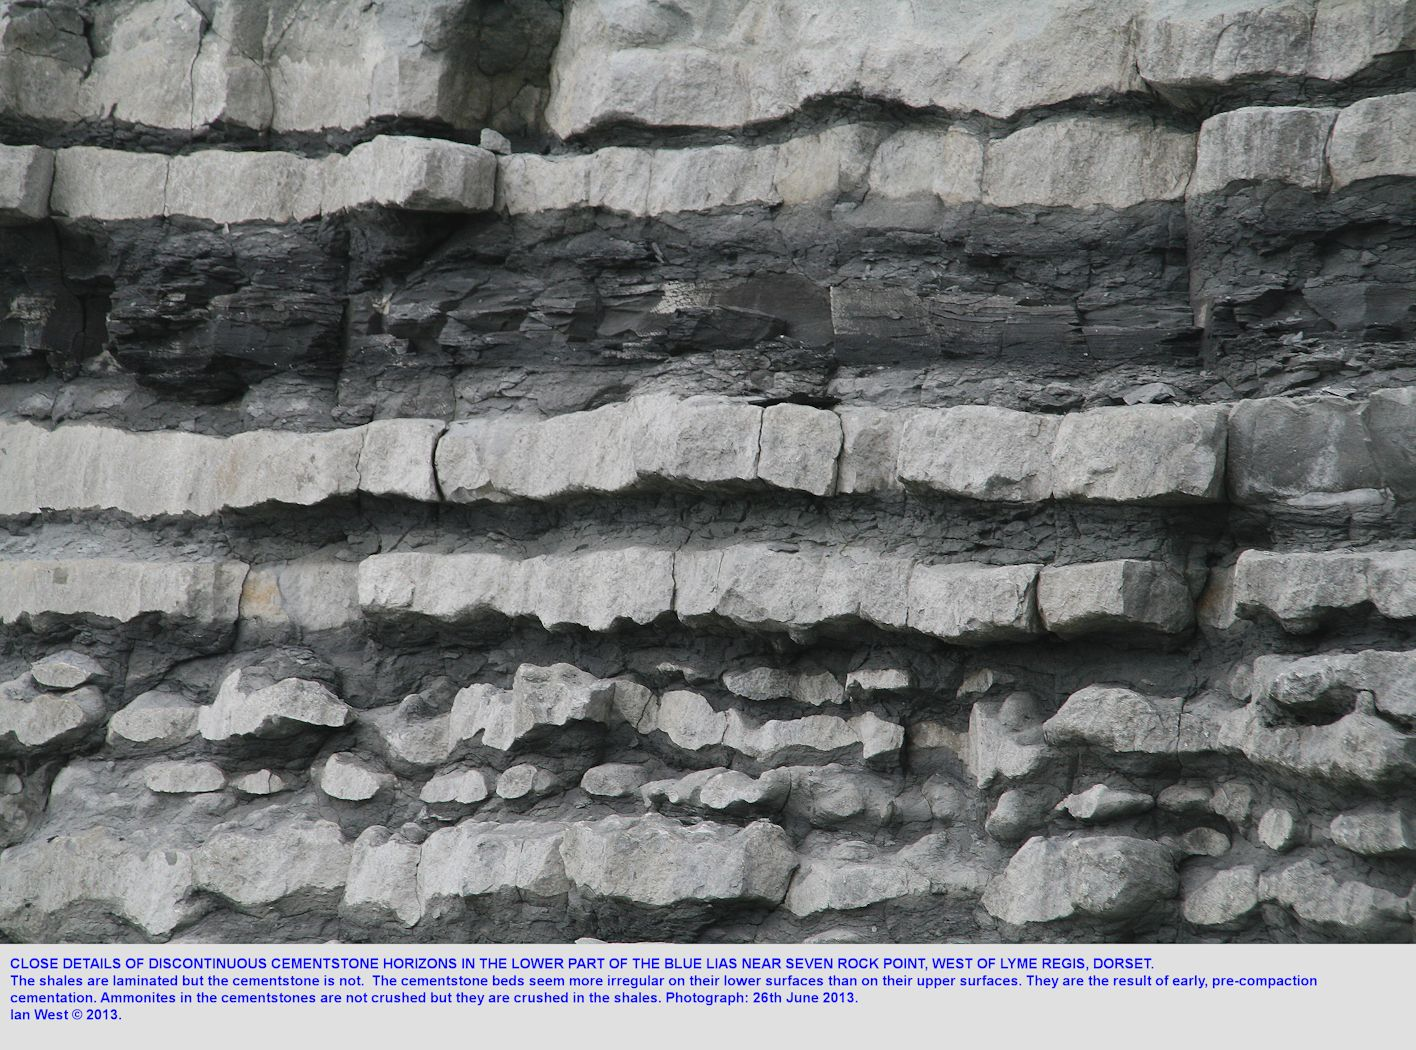 A close-up view of cementstone bands in the Brick Ledge vicinity, Blue Lias, Lyme Regis, Dorset, 26th June 2013